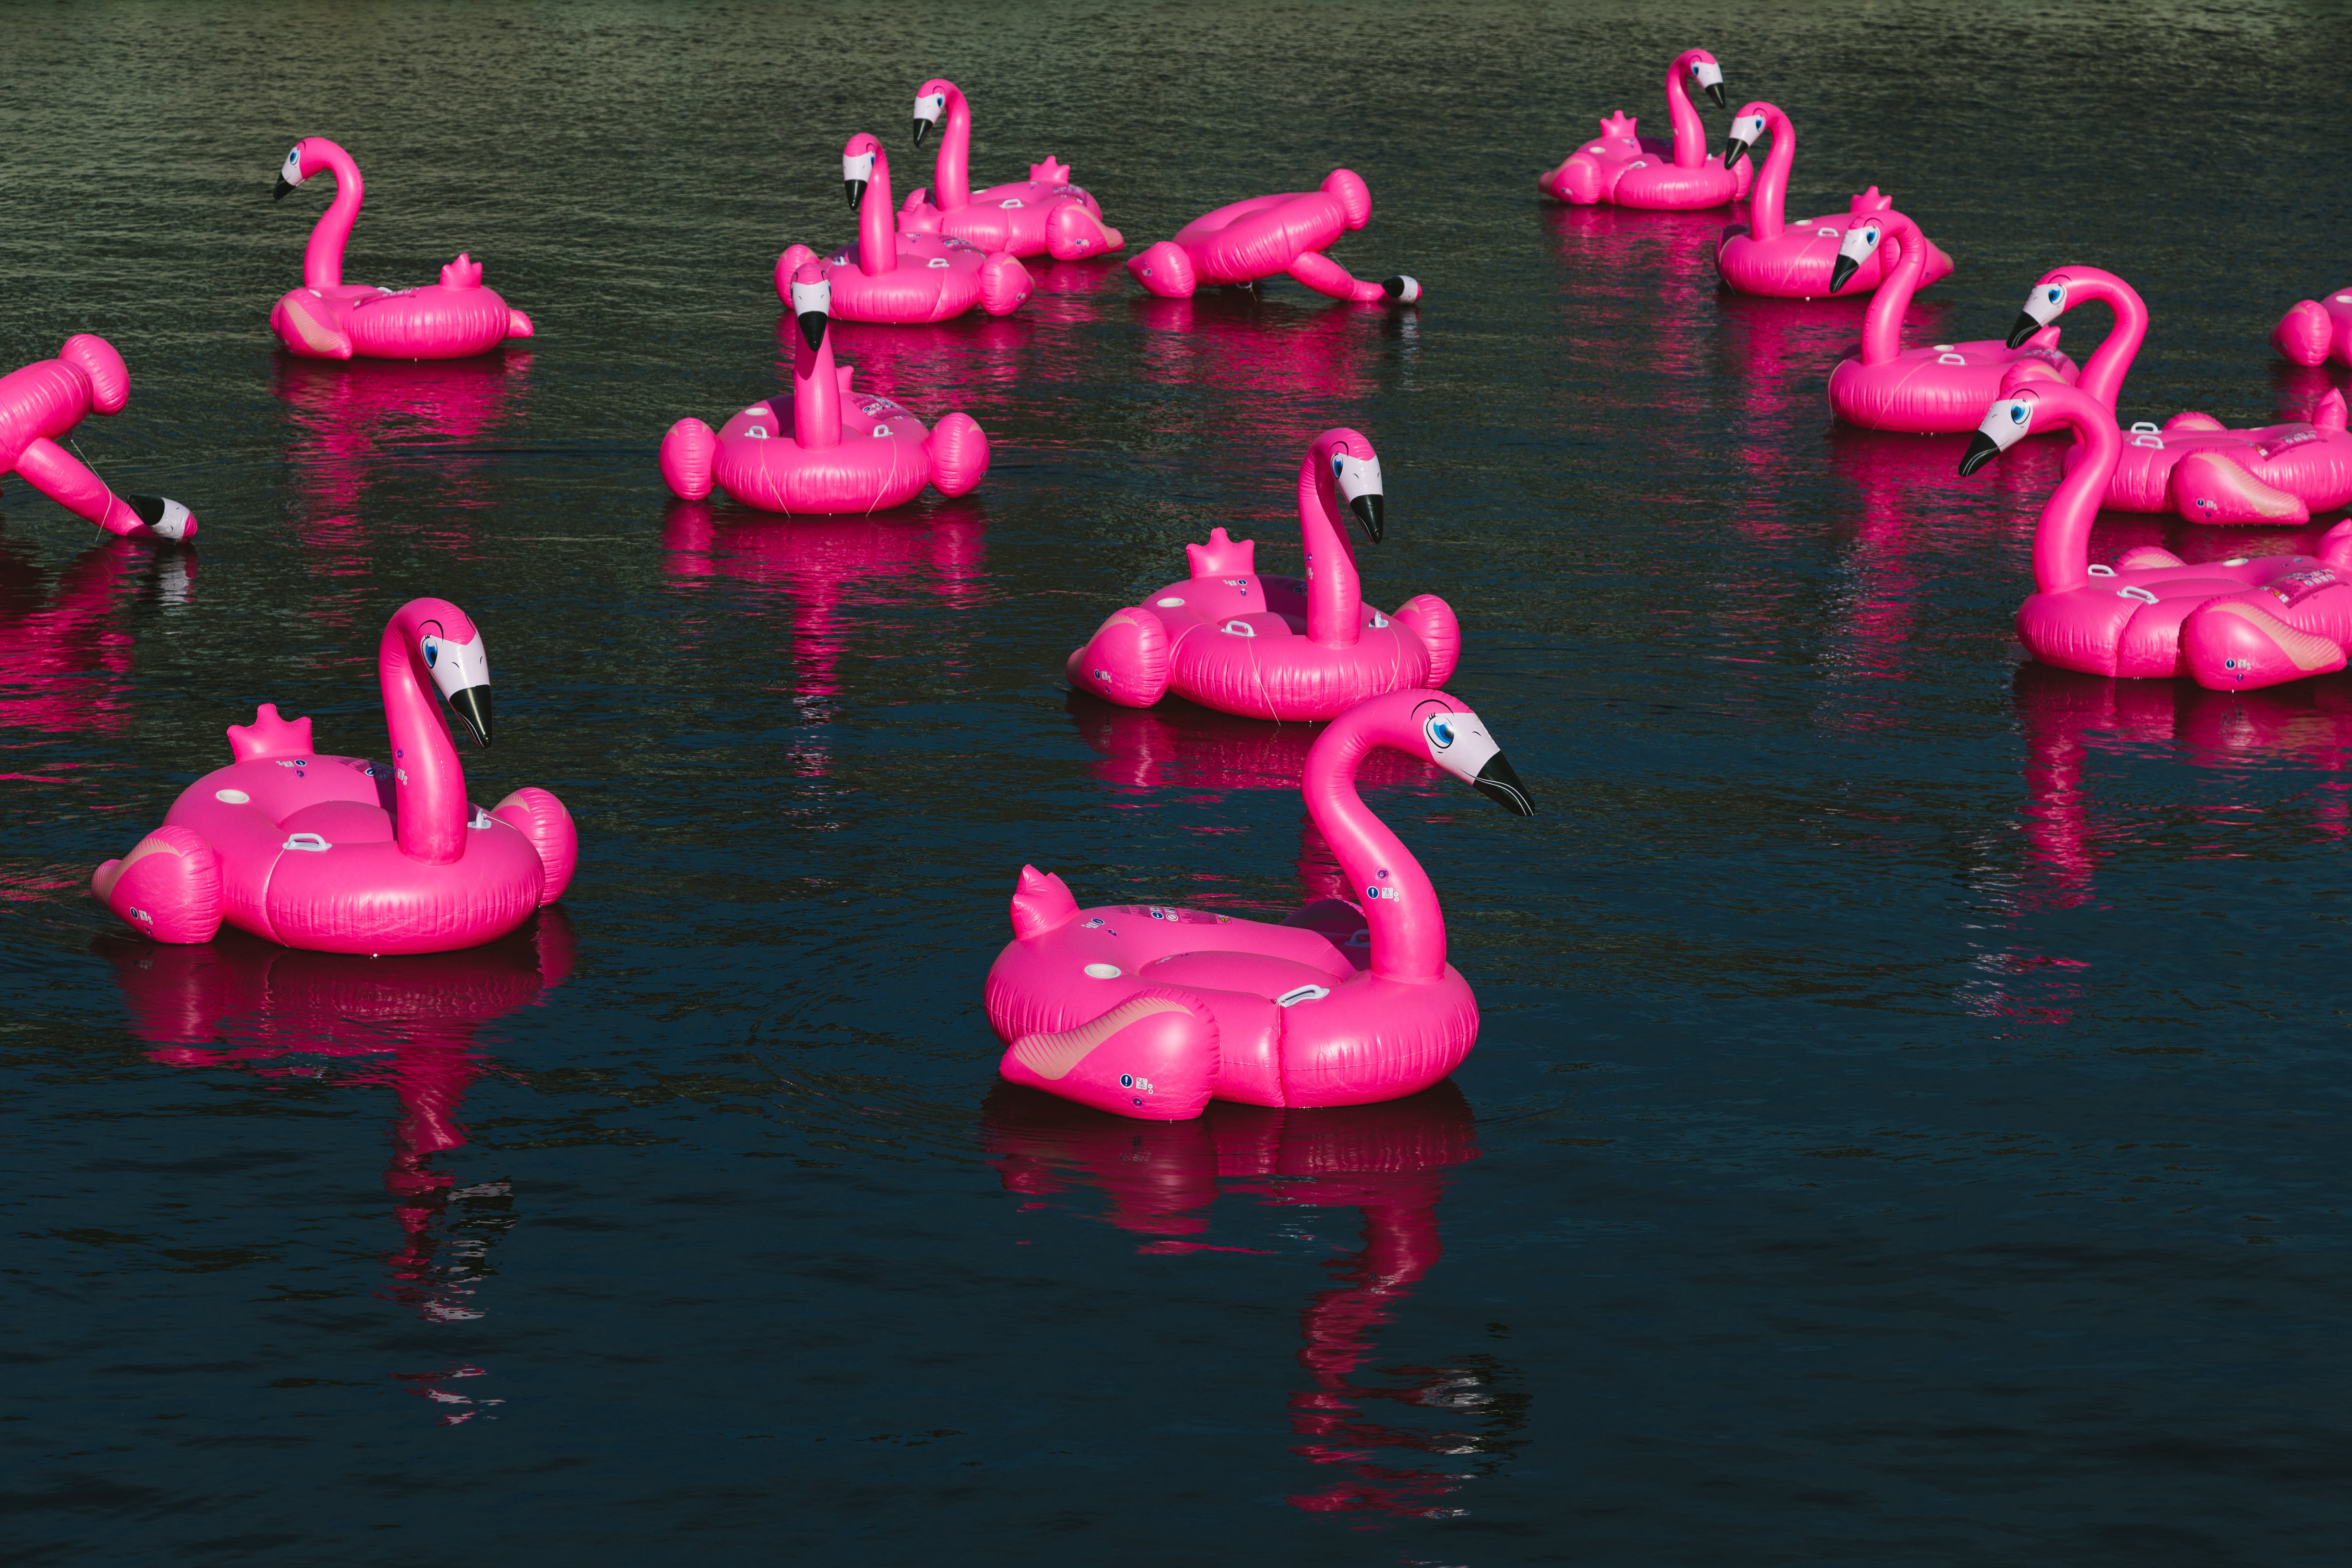 Free stock photo of body of water, flamingo, group, inflatable